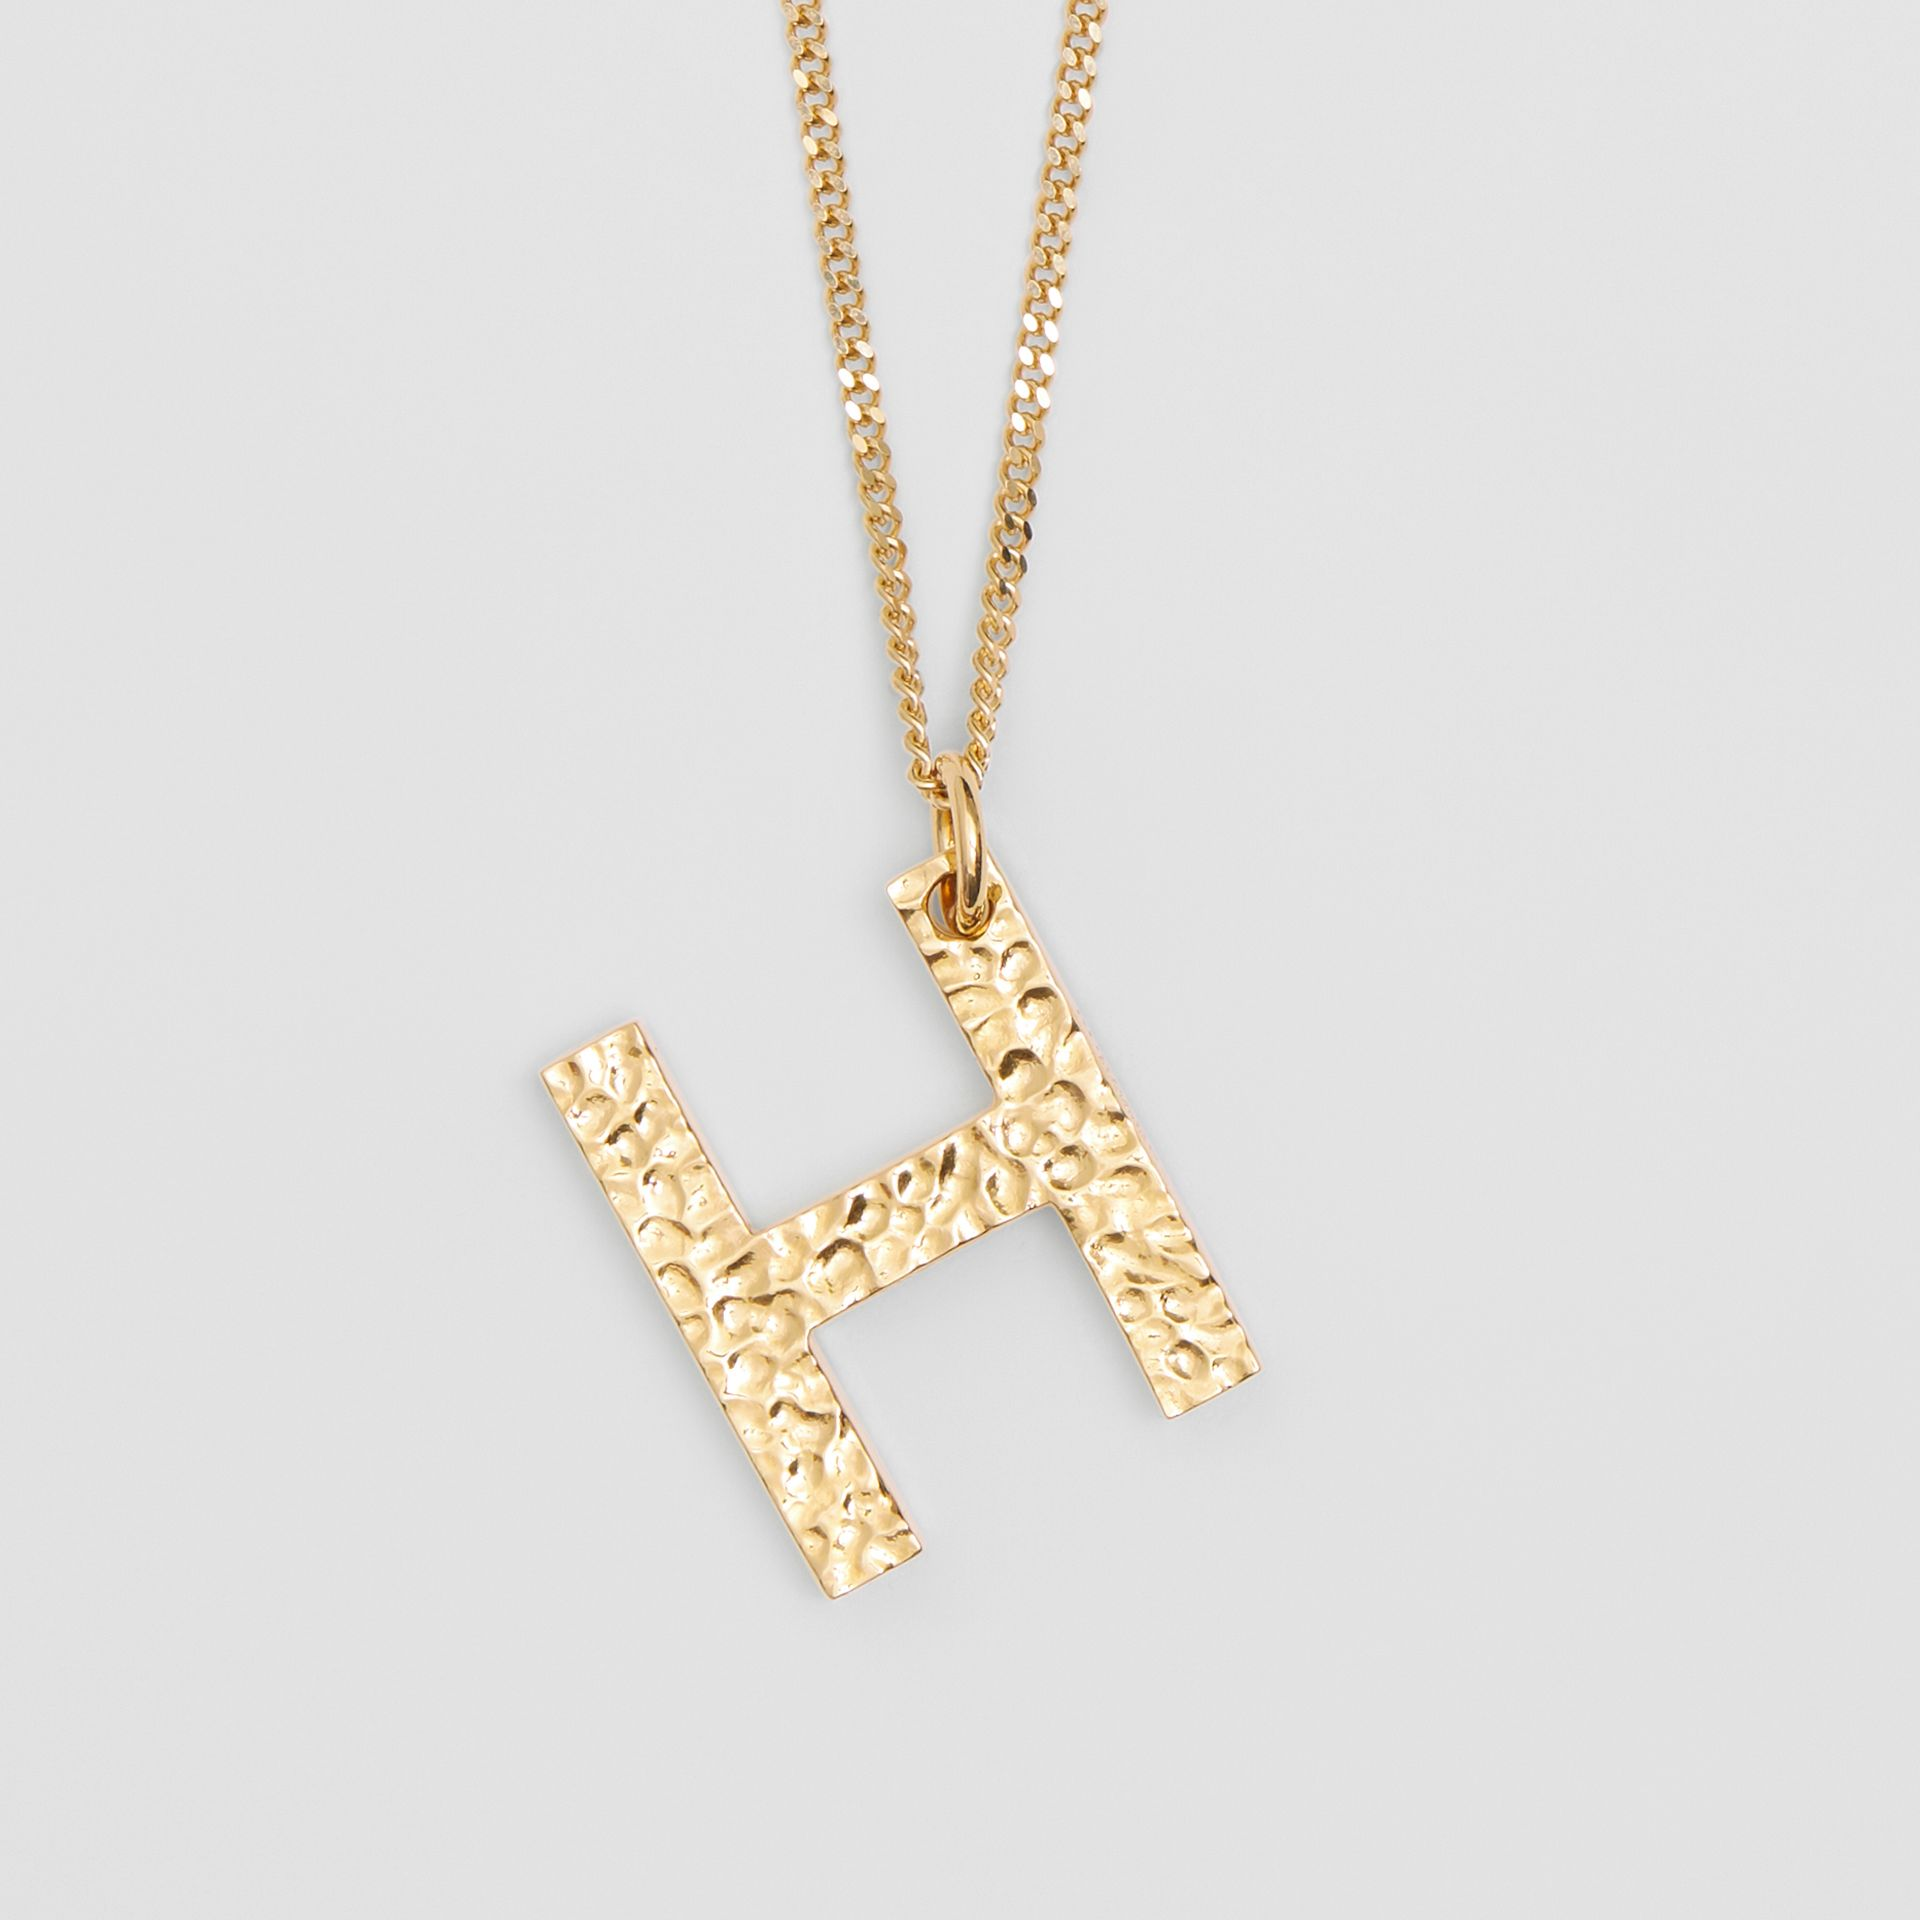 'H' Alphabet Charm Gold-plated Necklace in Light - Women | Burberry United Kingdom - gallery image 2